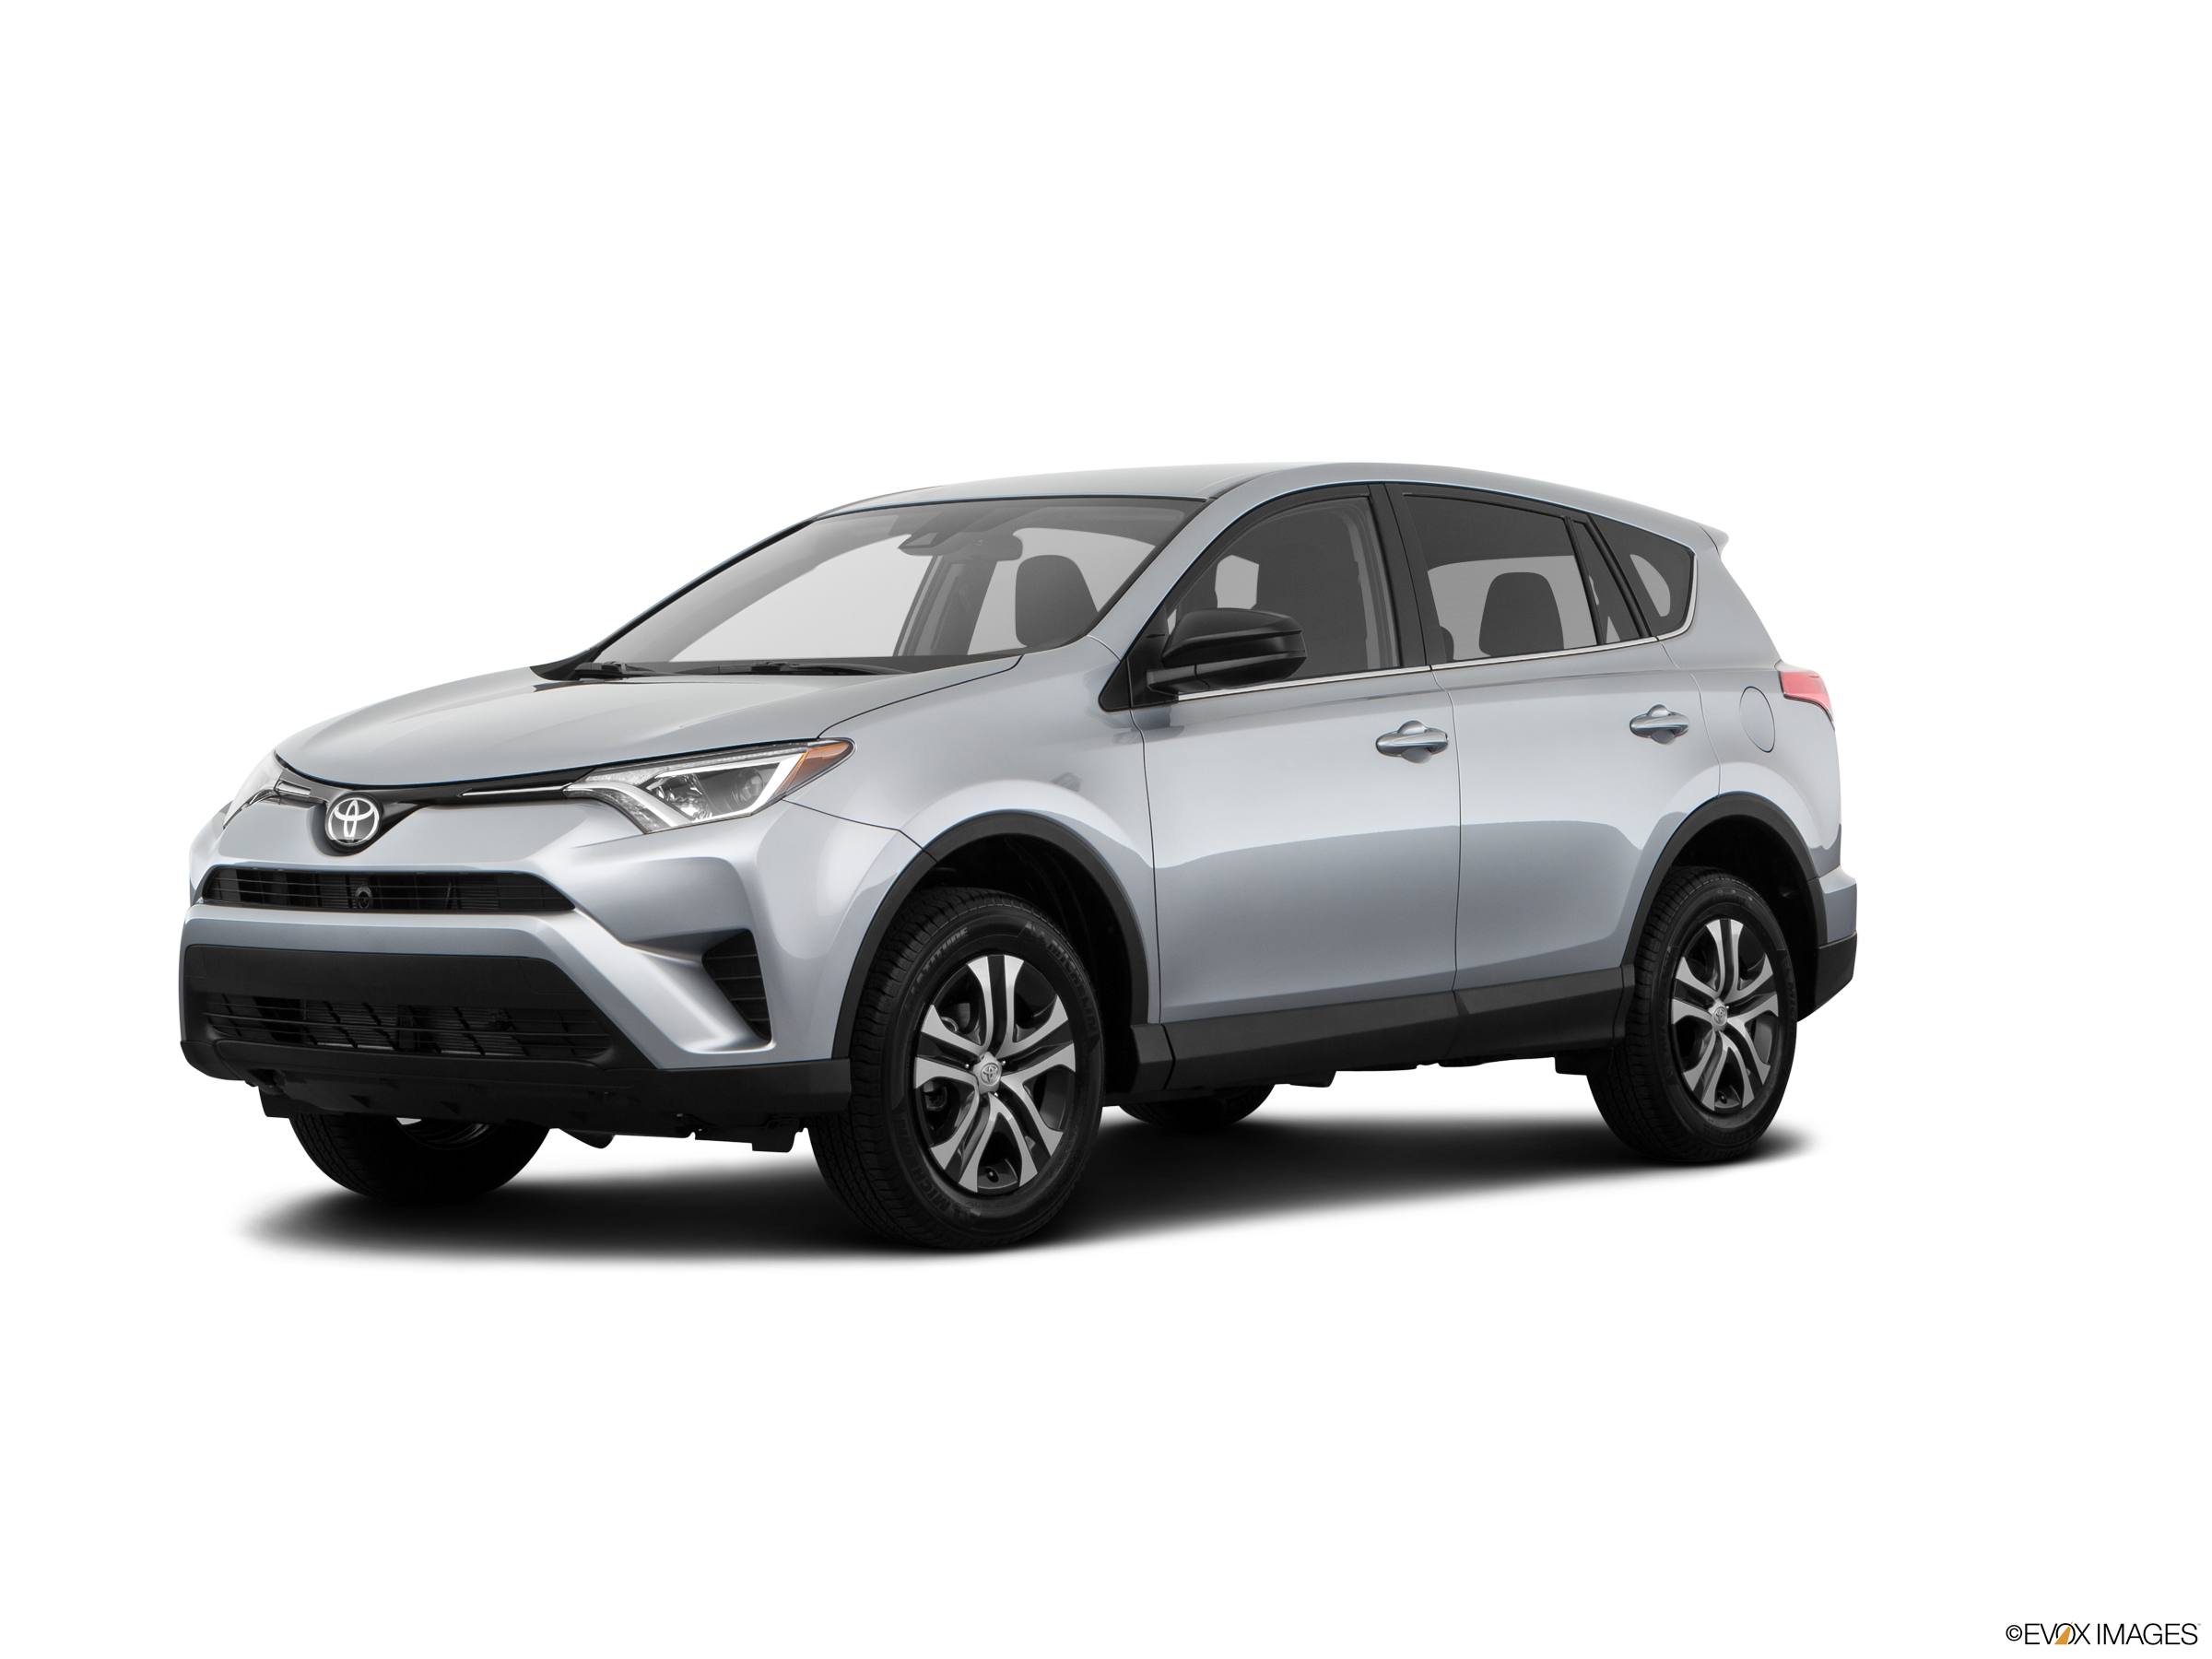 25 Best-Selling SUVs of 2018 - Toyota RAV4